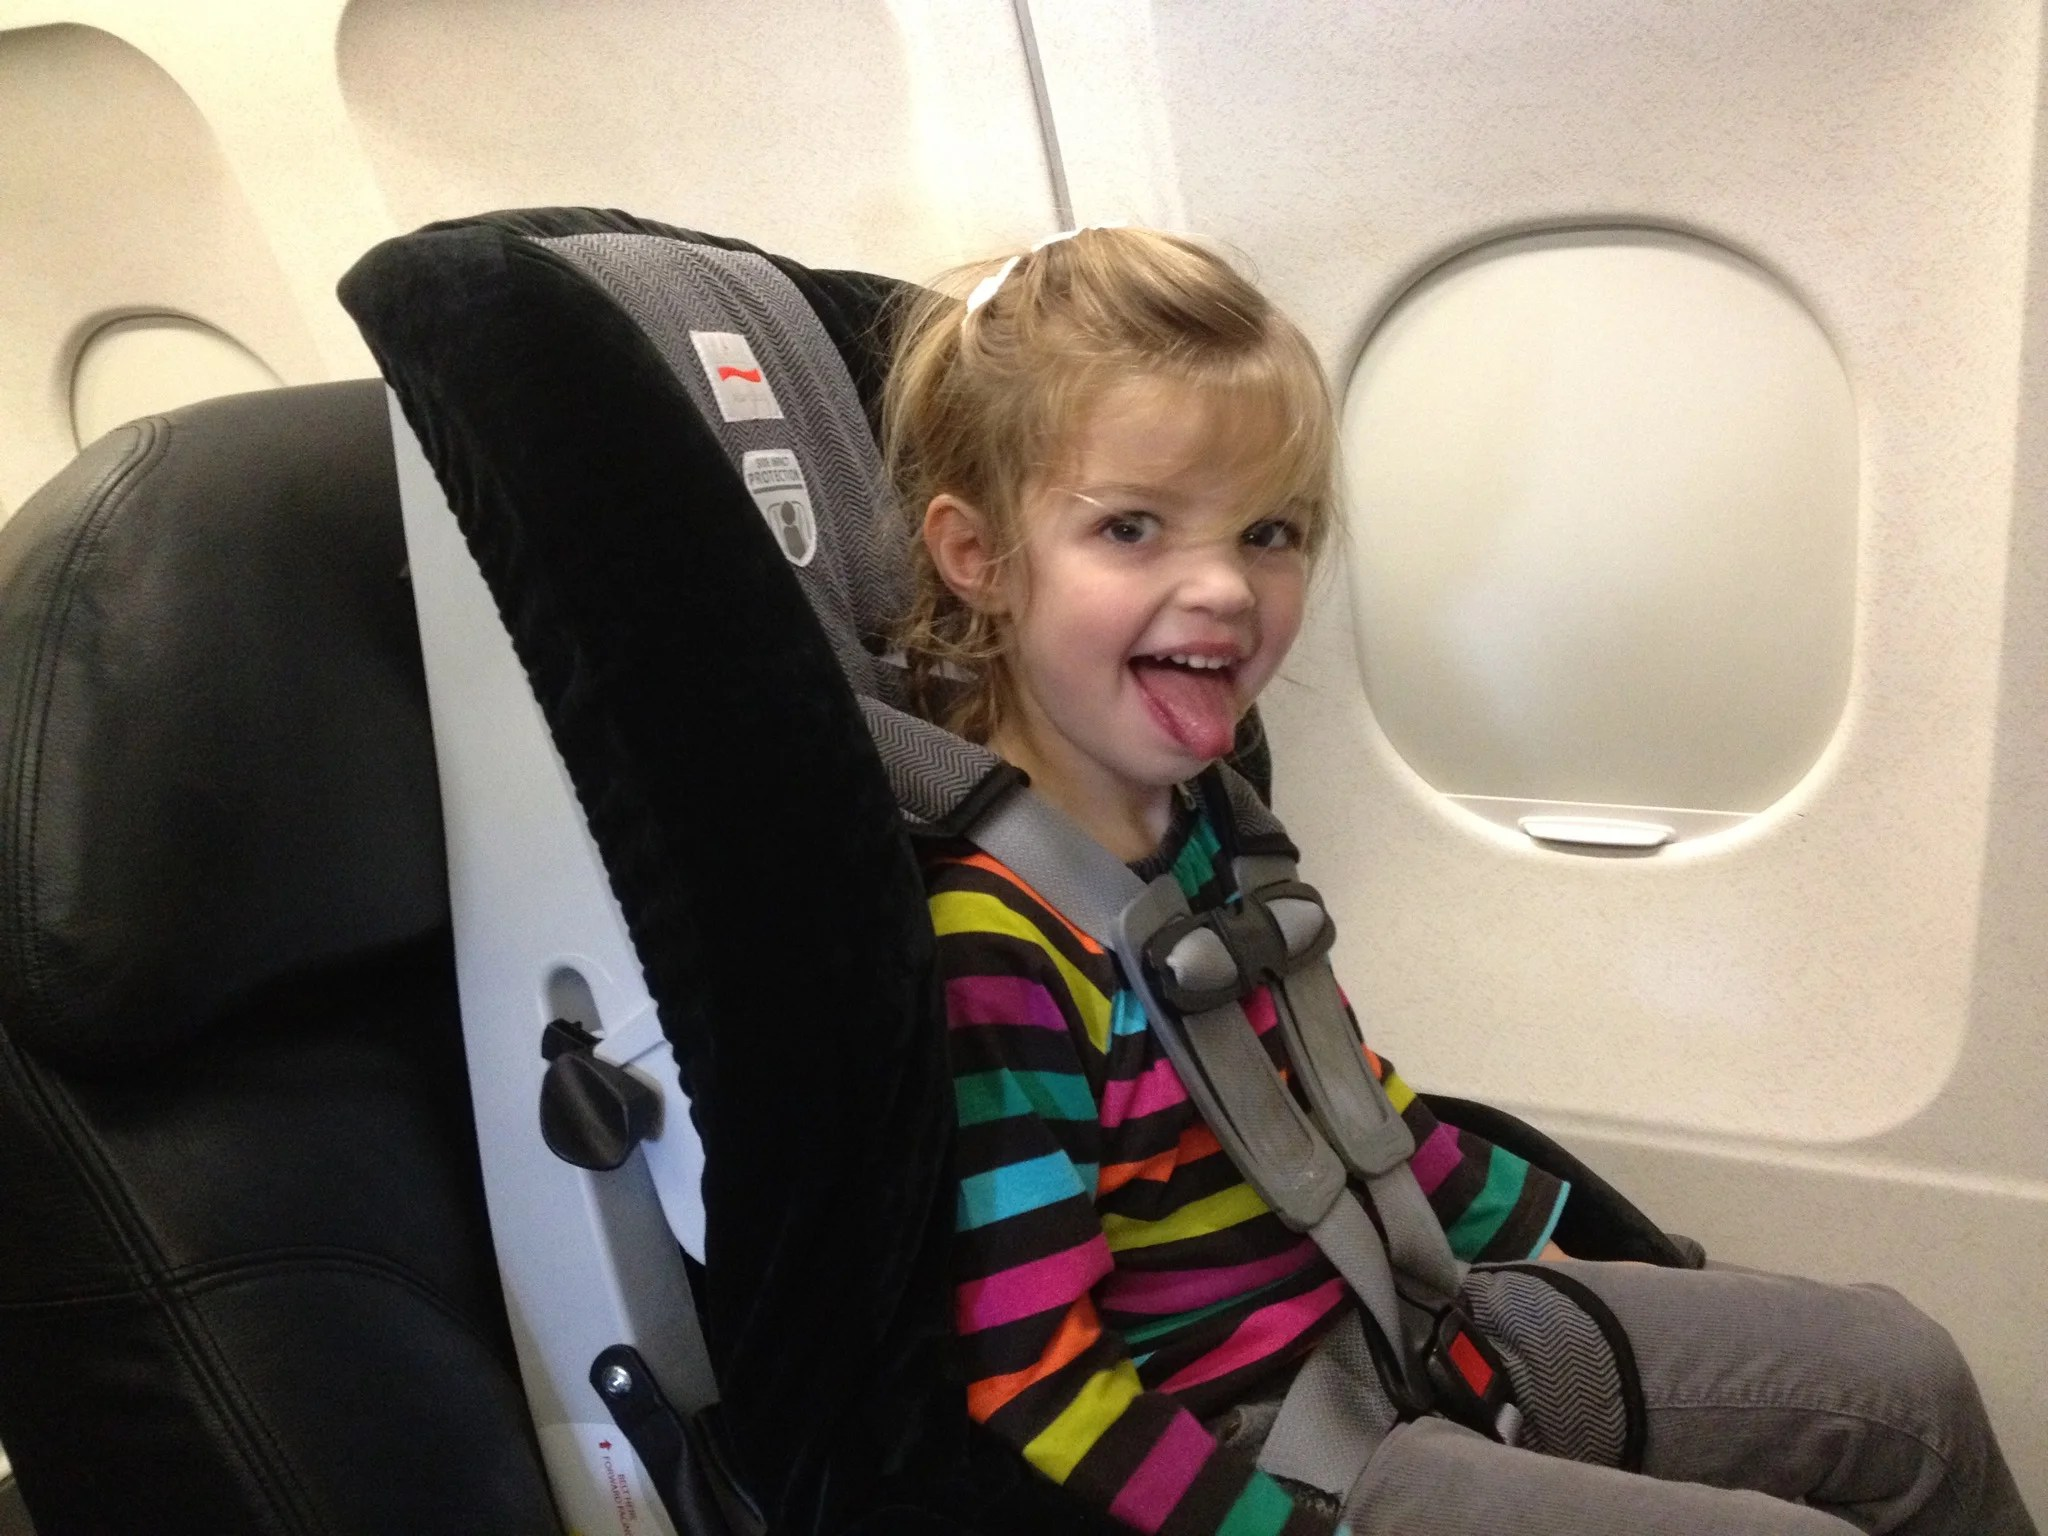 The Real Faa Car Seat Rules Not The Delta Version